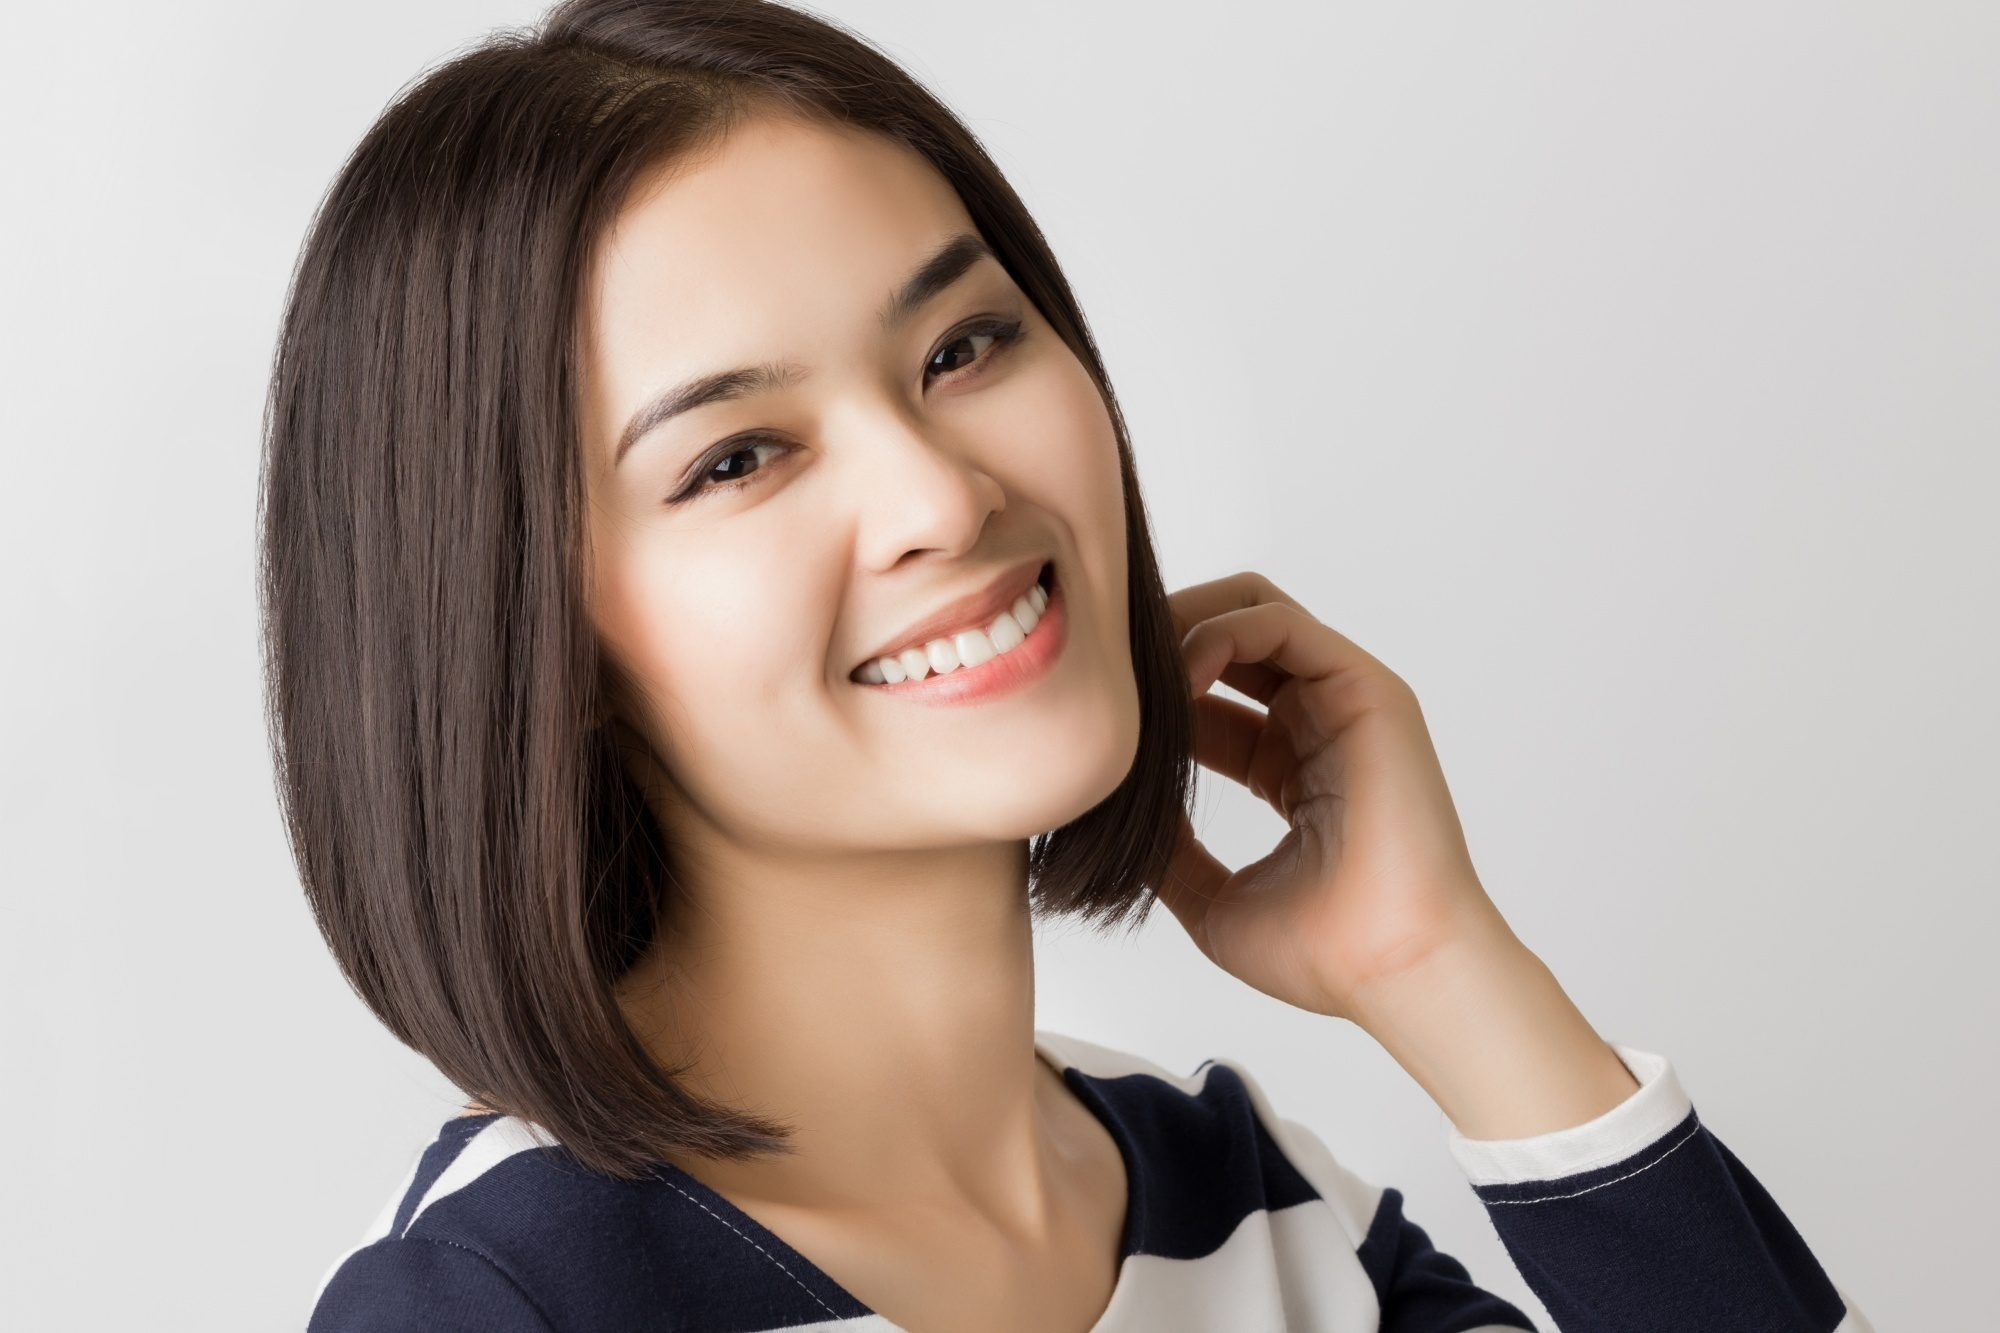 Asian woman with straight inverted bob hairstyle